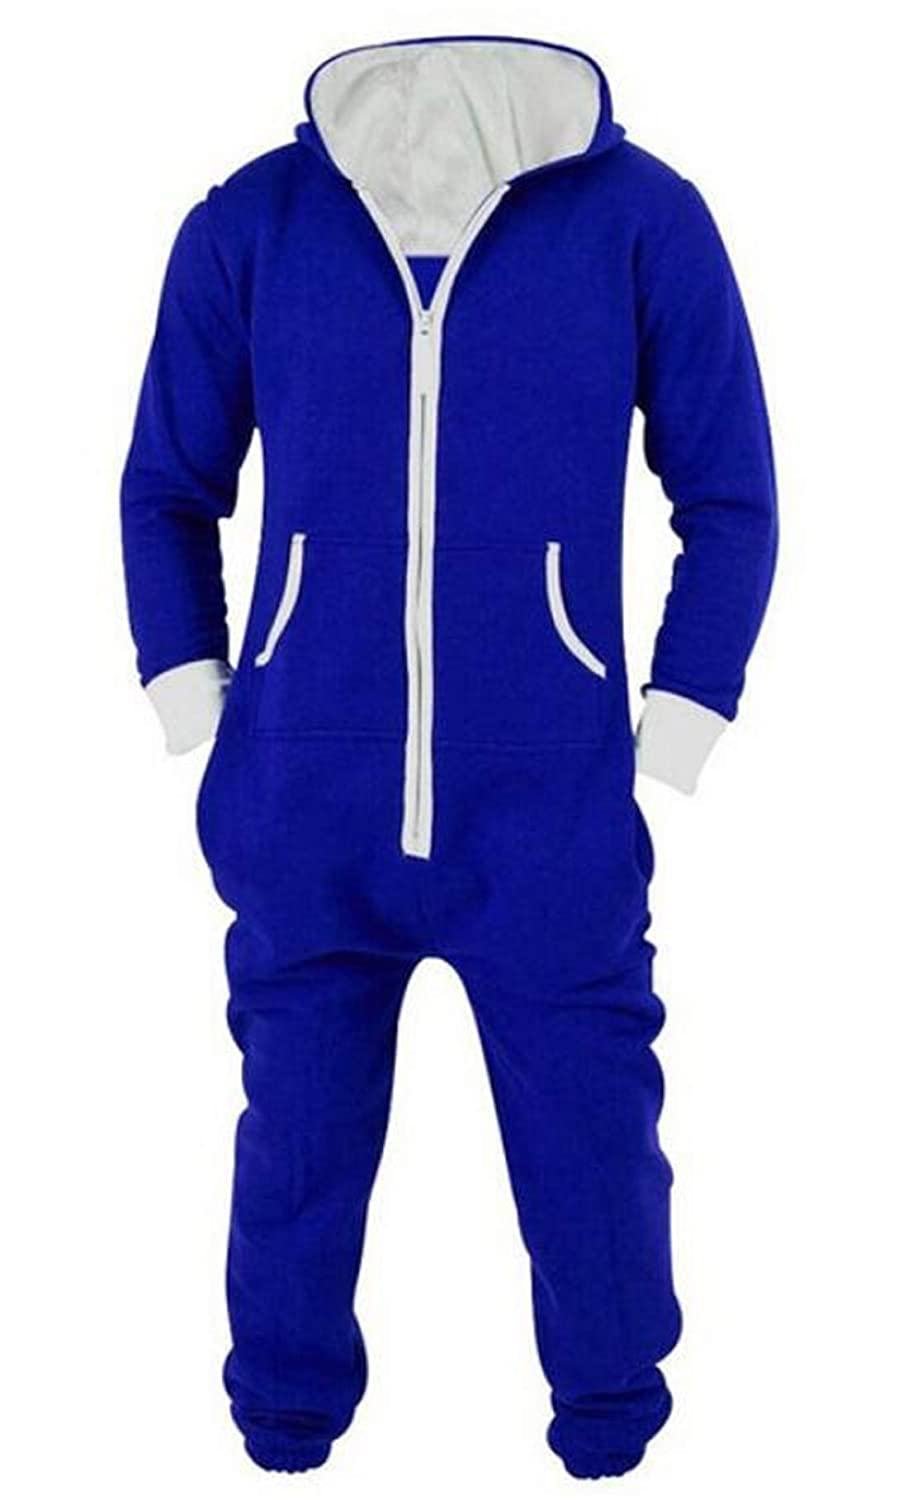 BYWX Men Lounge Wear Cosplay Playsuit Jumpsuit One Piece Onesie Hoodie Pajamas